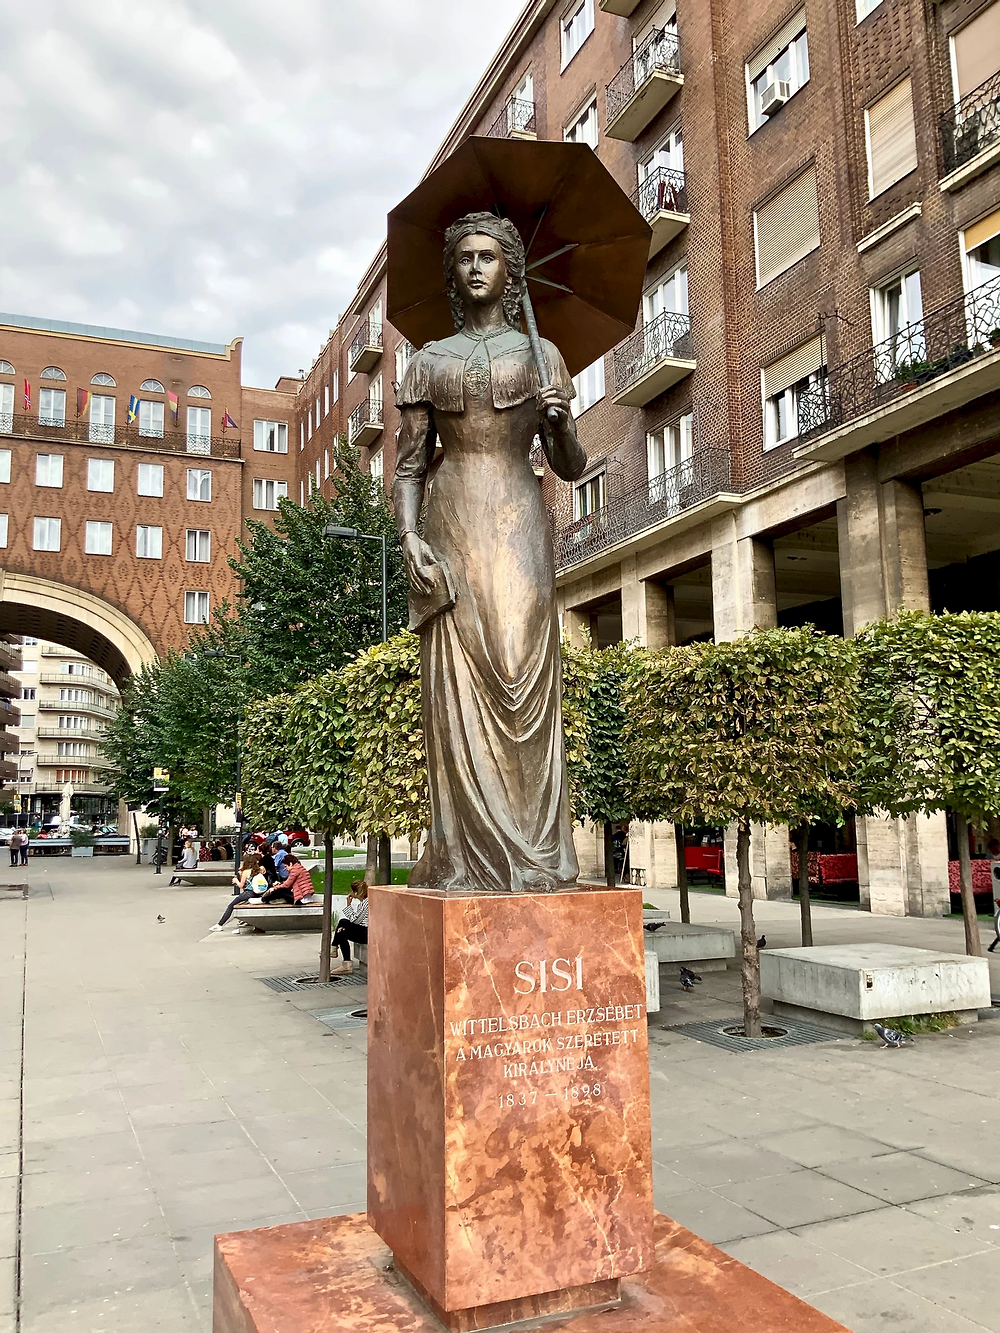 Empress Sisi statue in Budapest